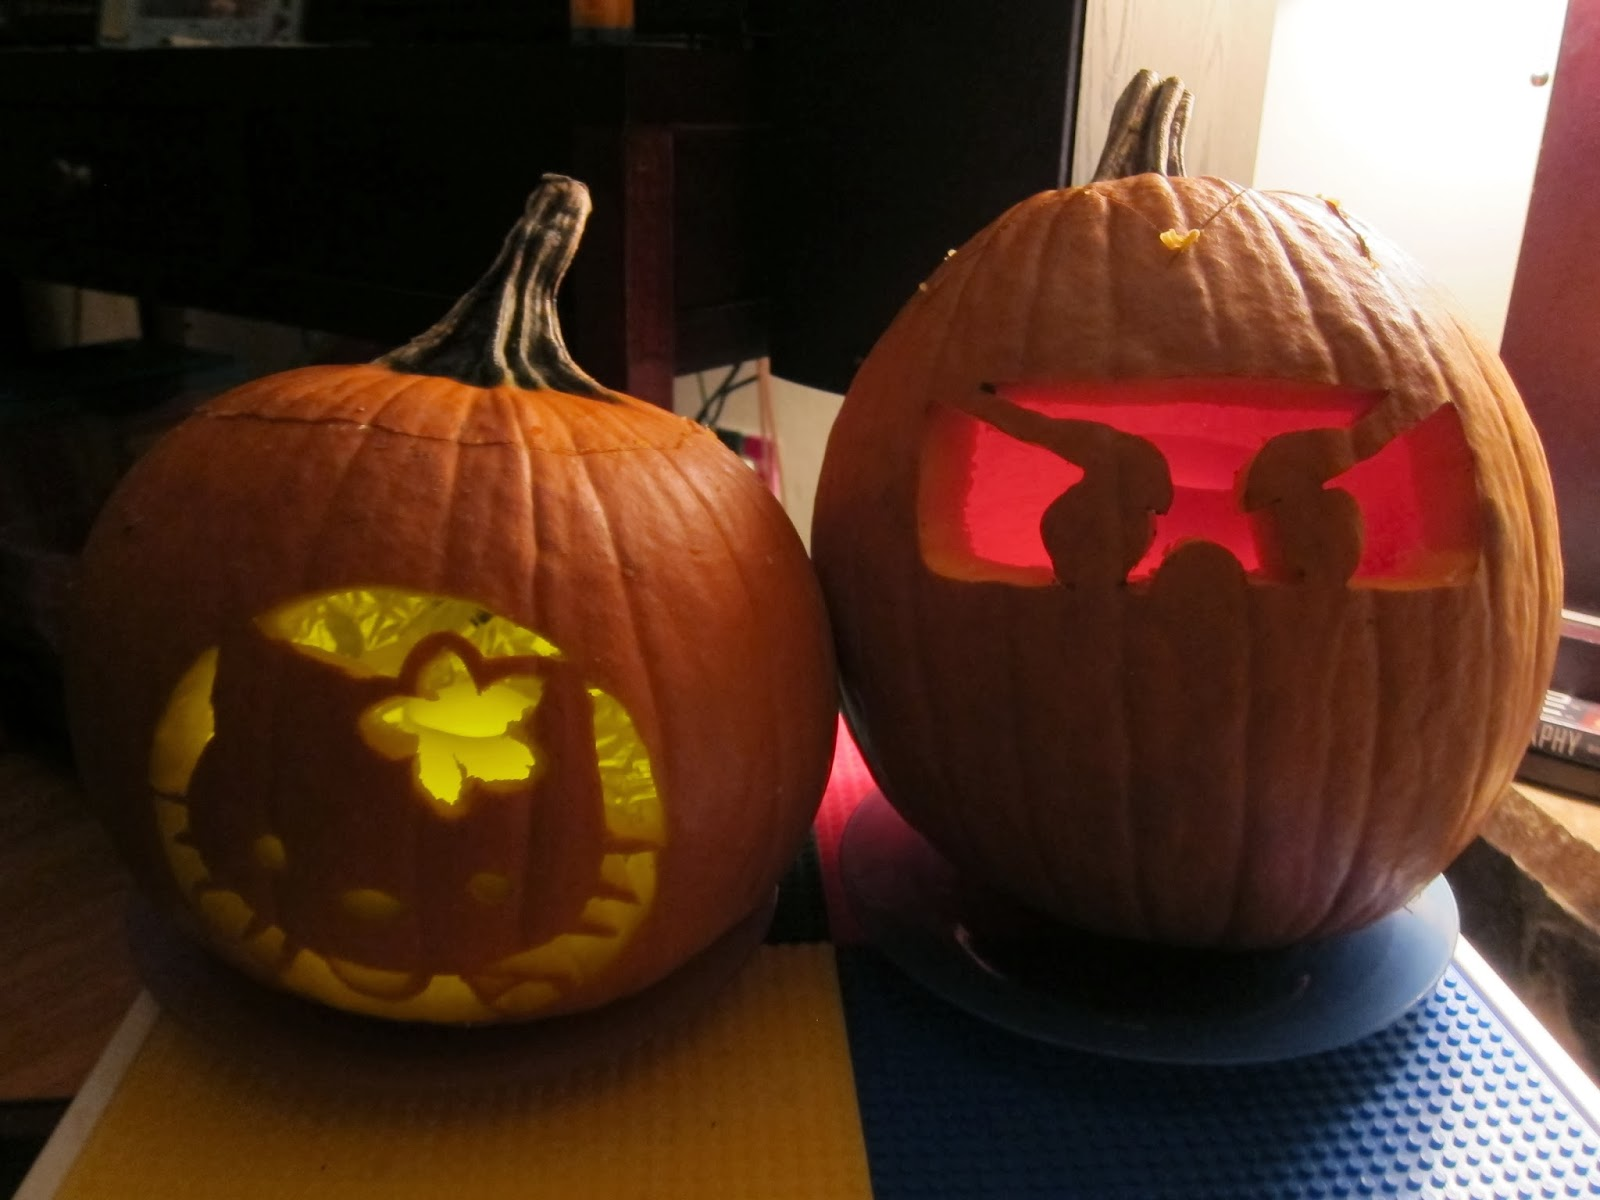 After A Little Google Research We Found Great Site With Hello Kitty Pumpkin Carving Templates For Free My Husband Drew His Own Ninjgao Design